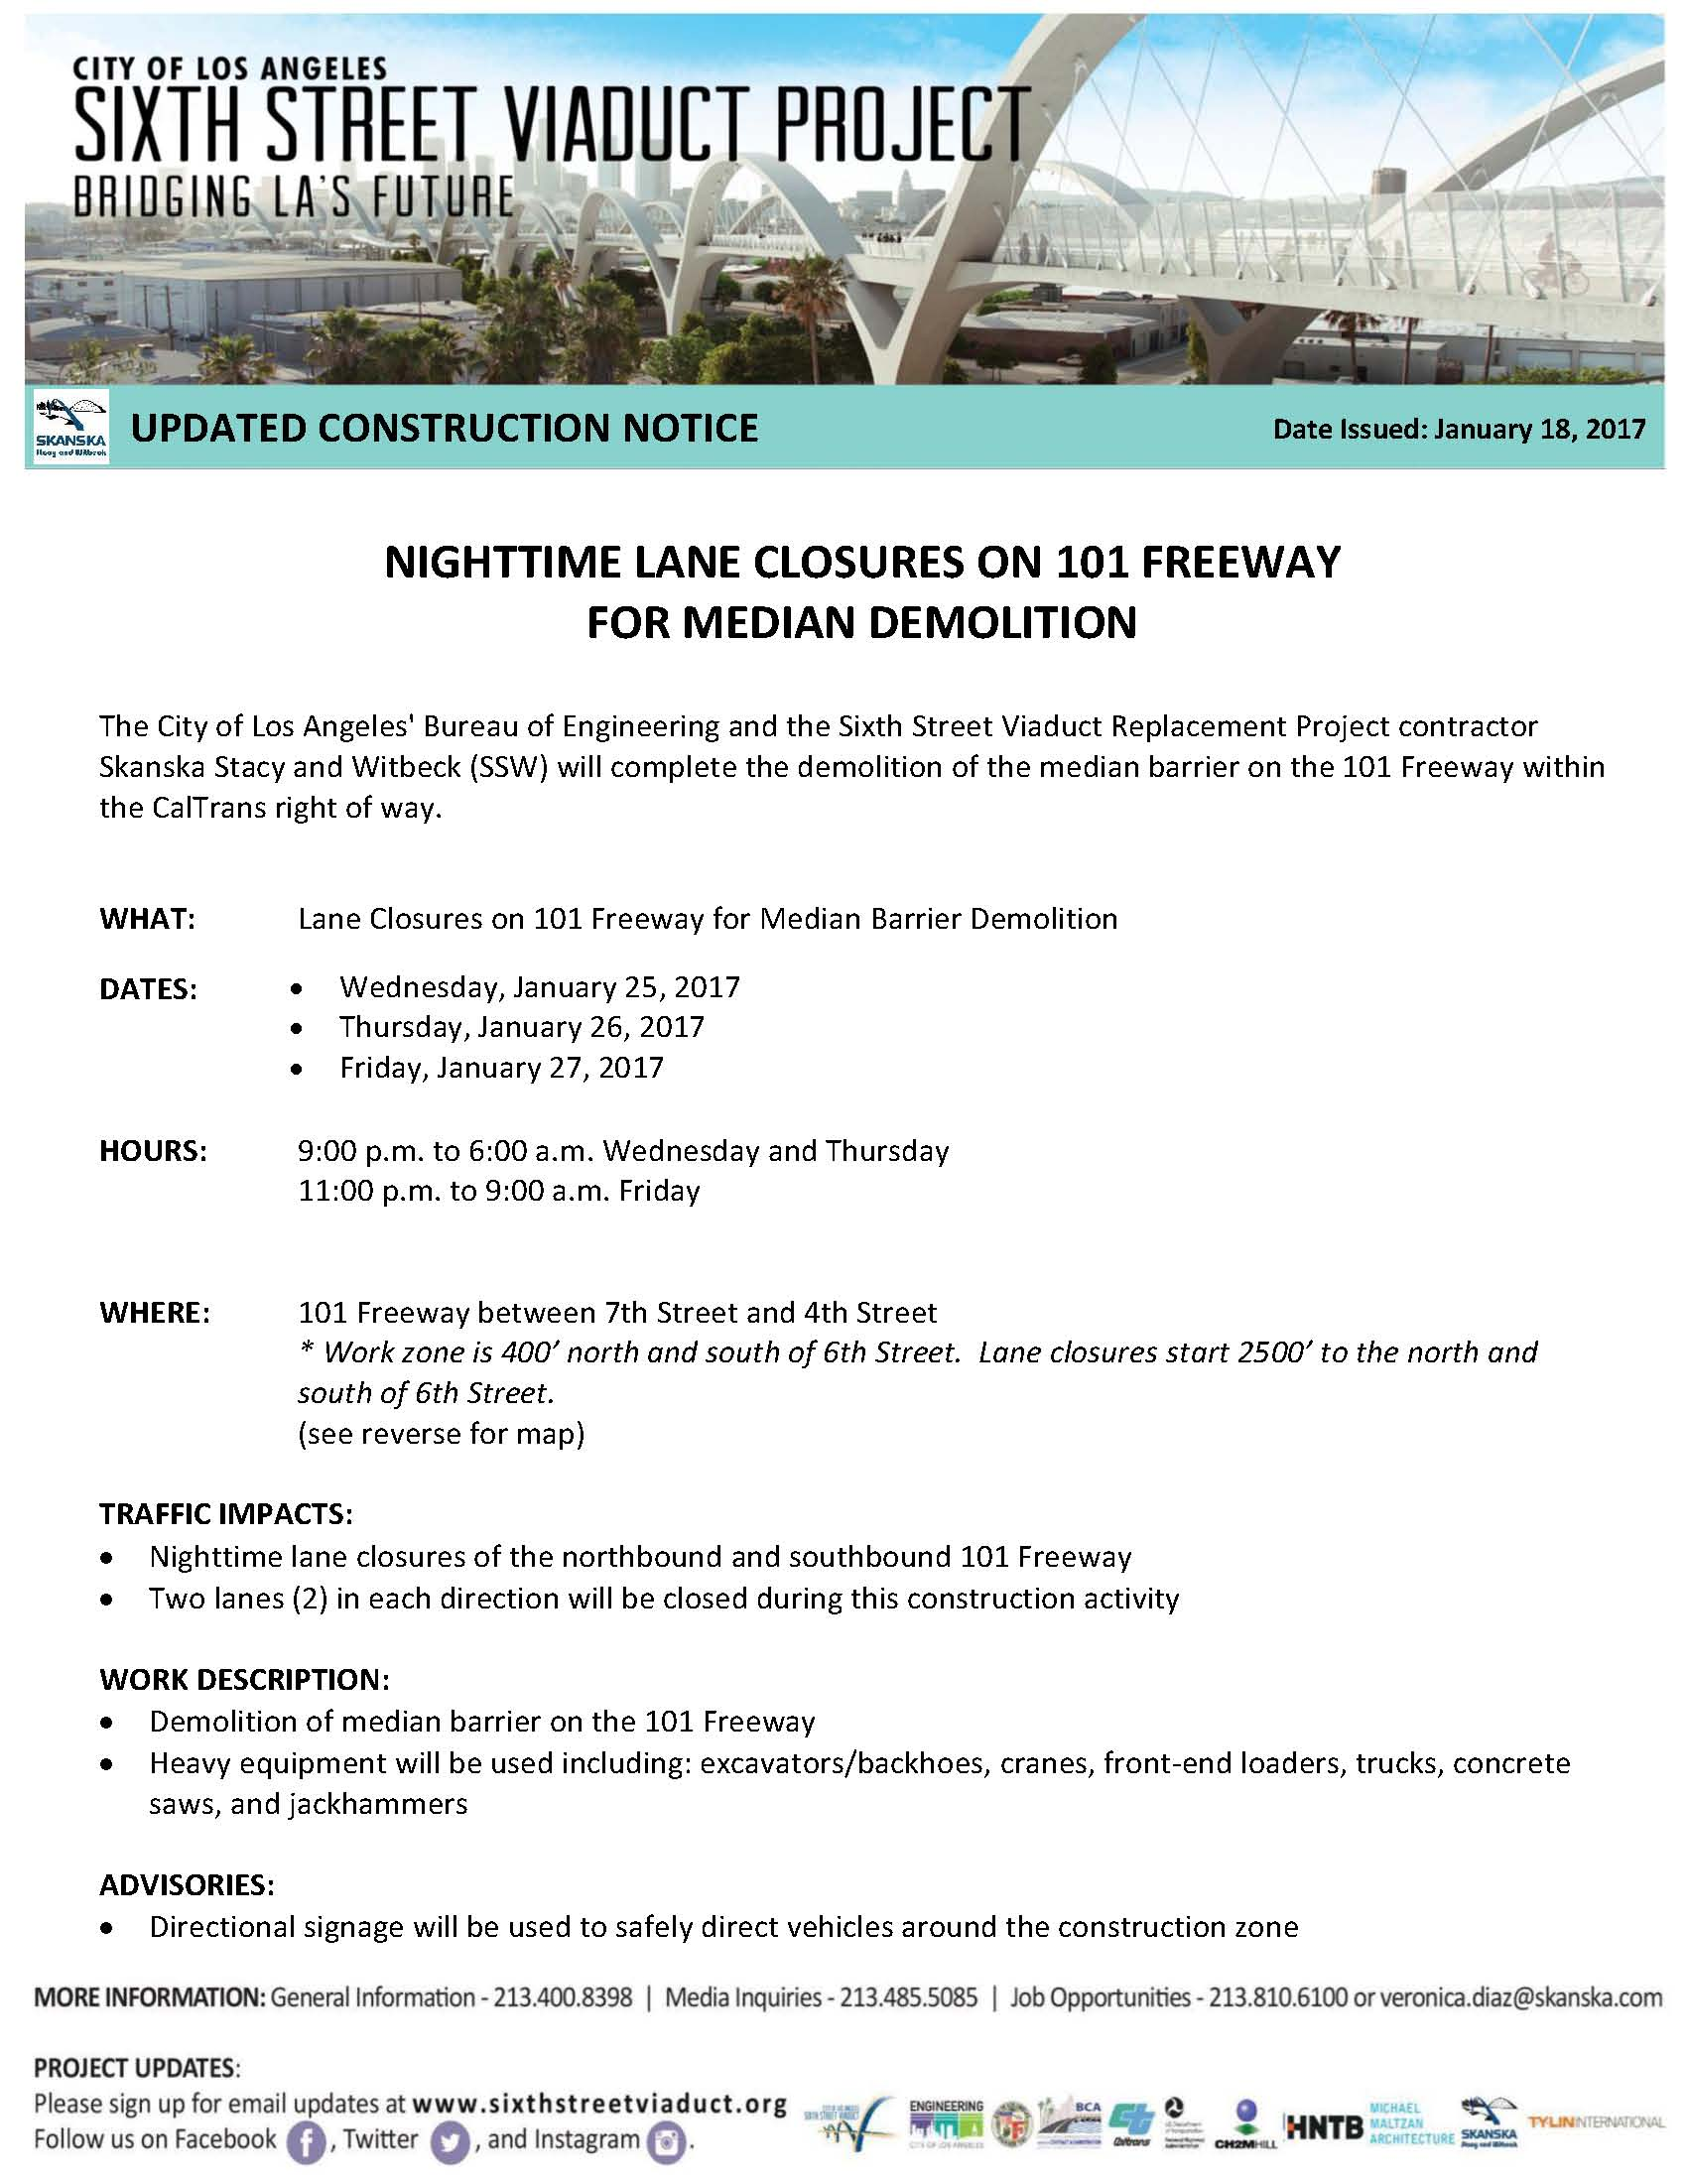 2017-01-18__SSW_Construction_Notice_-_Nighttime_101_Fwy_Lane_Closures_for_Median_Demolition_Page_1.jpg